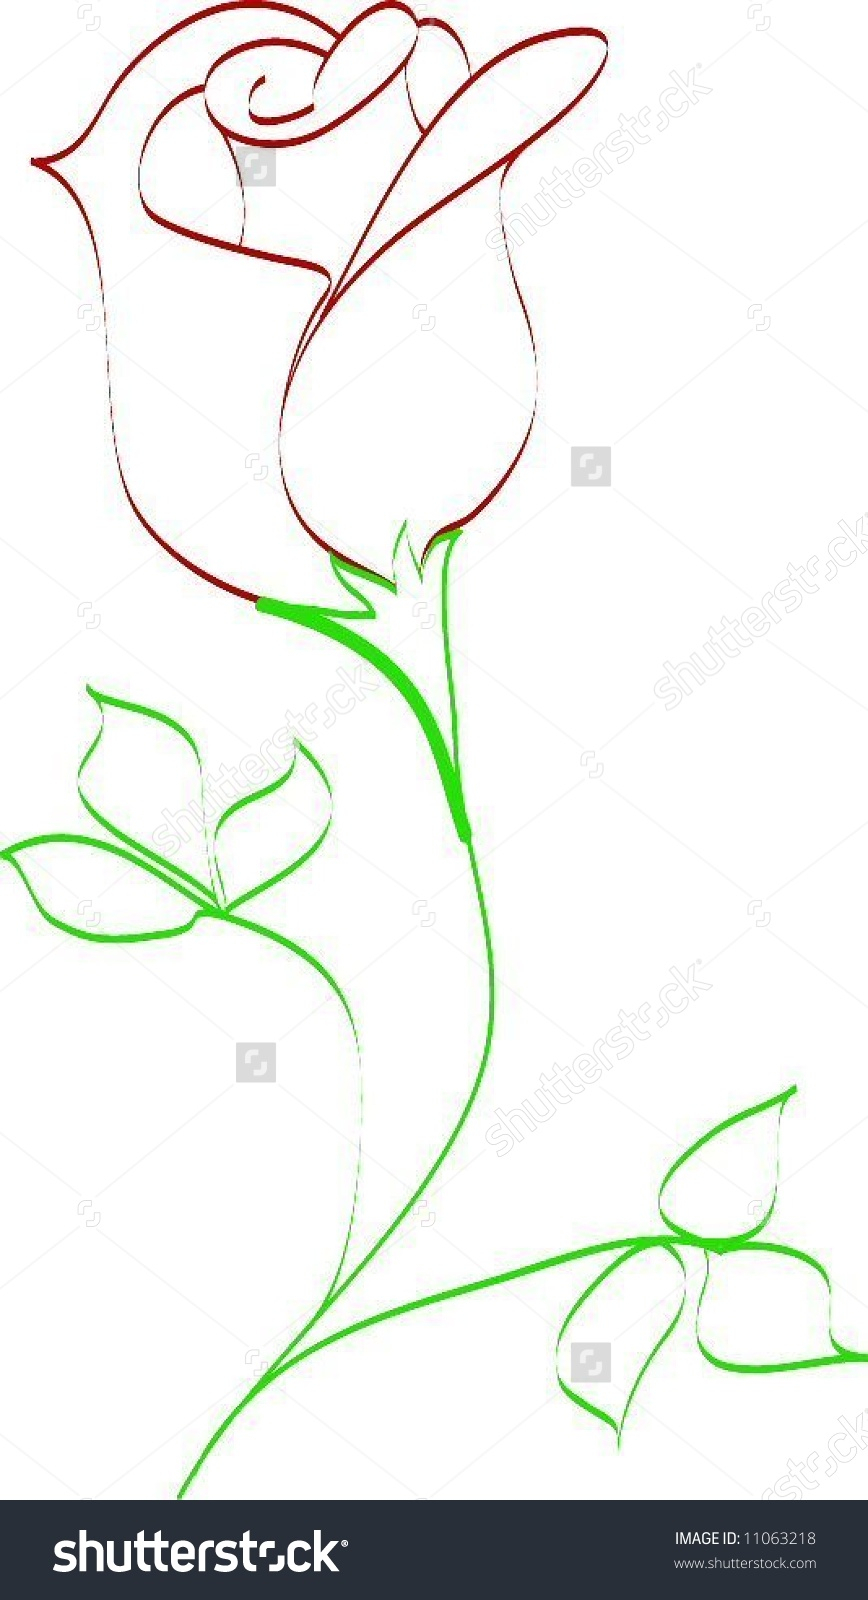 868x1600 Simple Drawing Of A Rose Simple Line Drawing Rose Bud Stock Vector